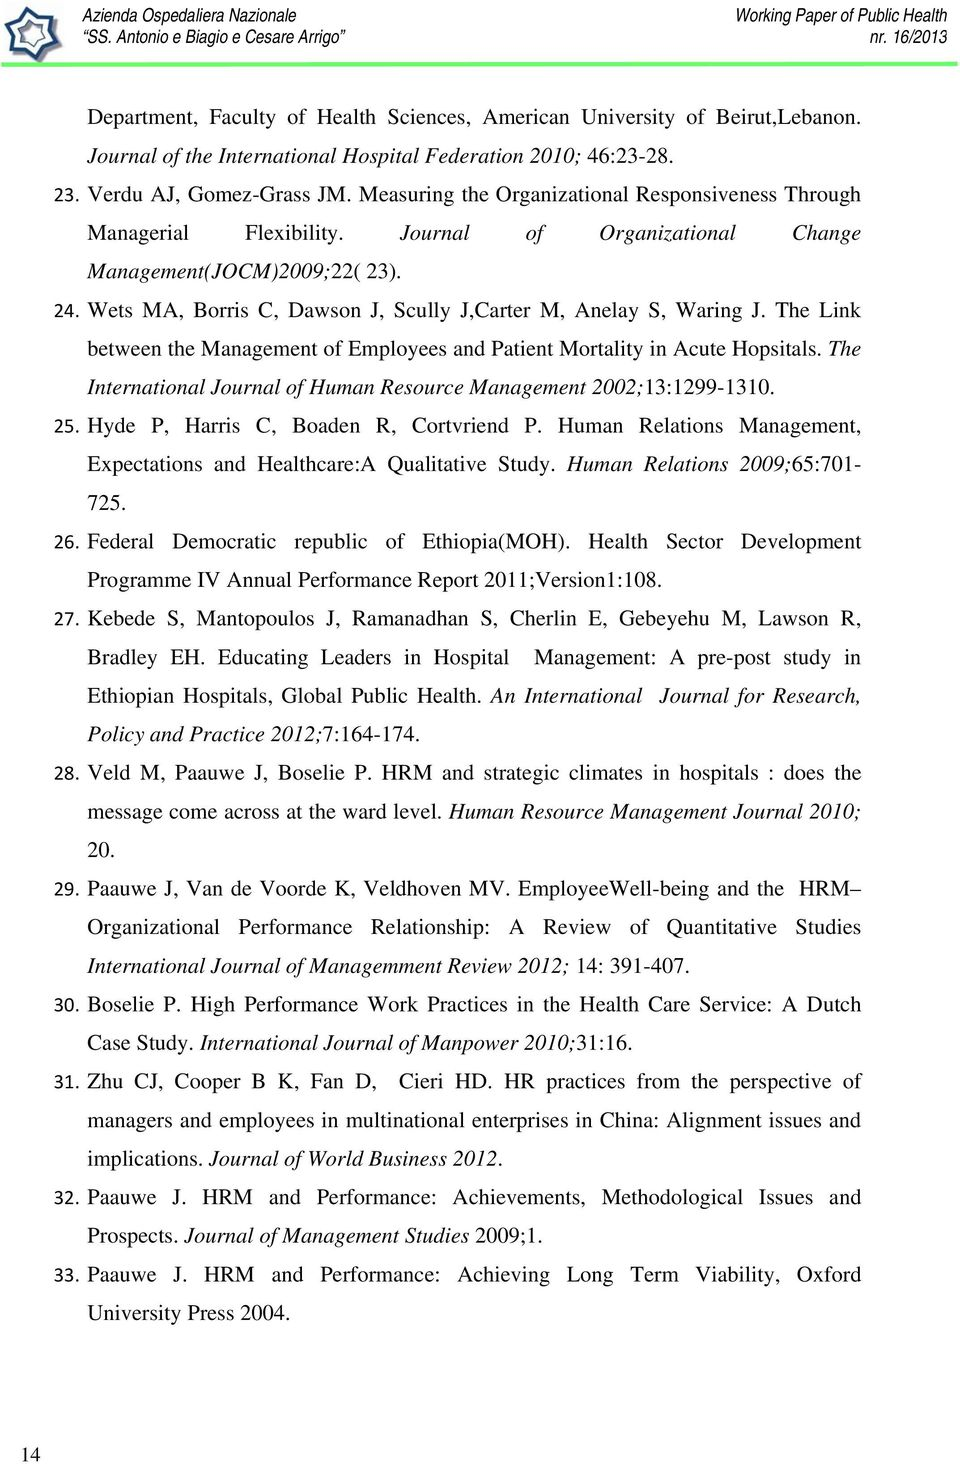 Wets MA, Borris C, Dawson J, Scully J,Carter M, Anelay S, Waring J. The Link between the Management of Employees and Patient Mortality in Acute Hopsitals.